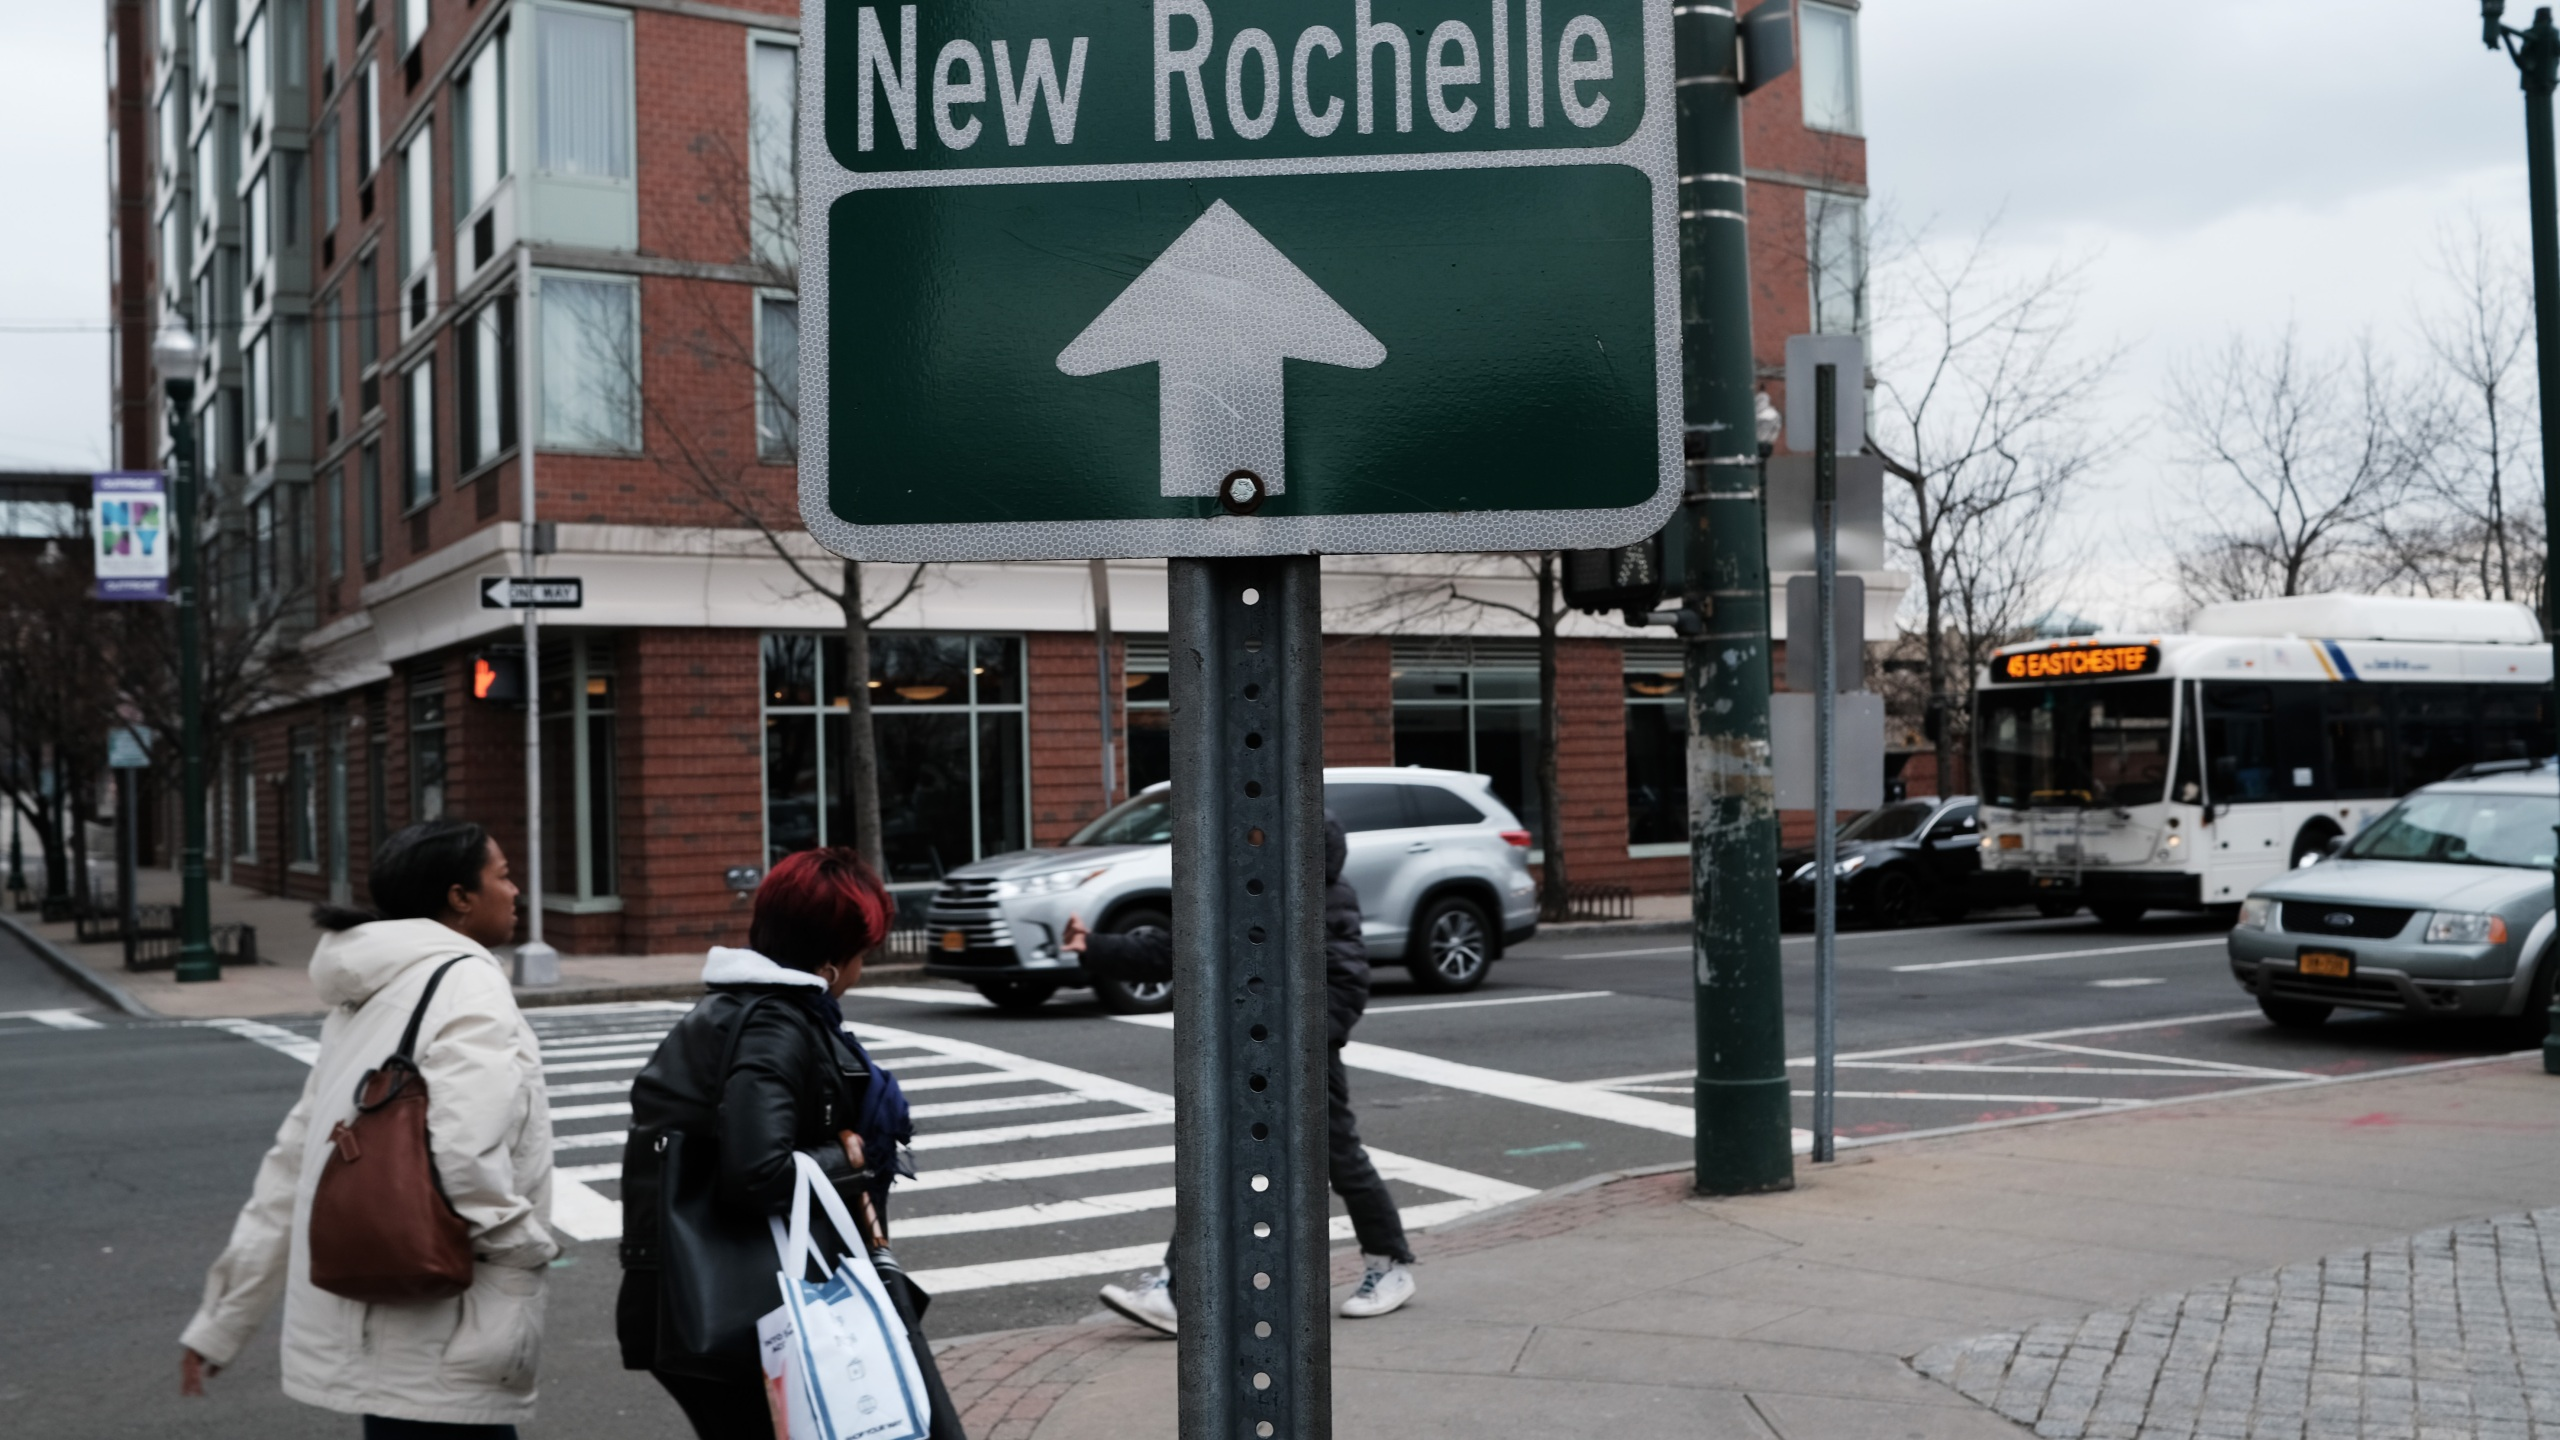 People walk through downtown on March 10, 2020 in New Rochelle, New York. (Credit: Spencer Platt/Getty Images)